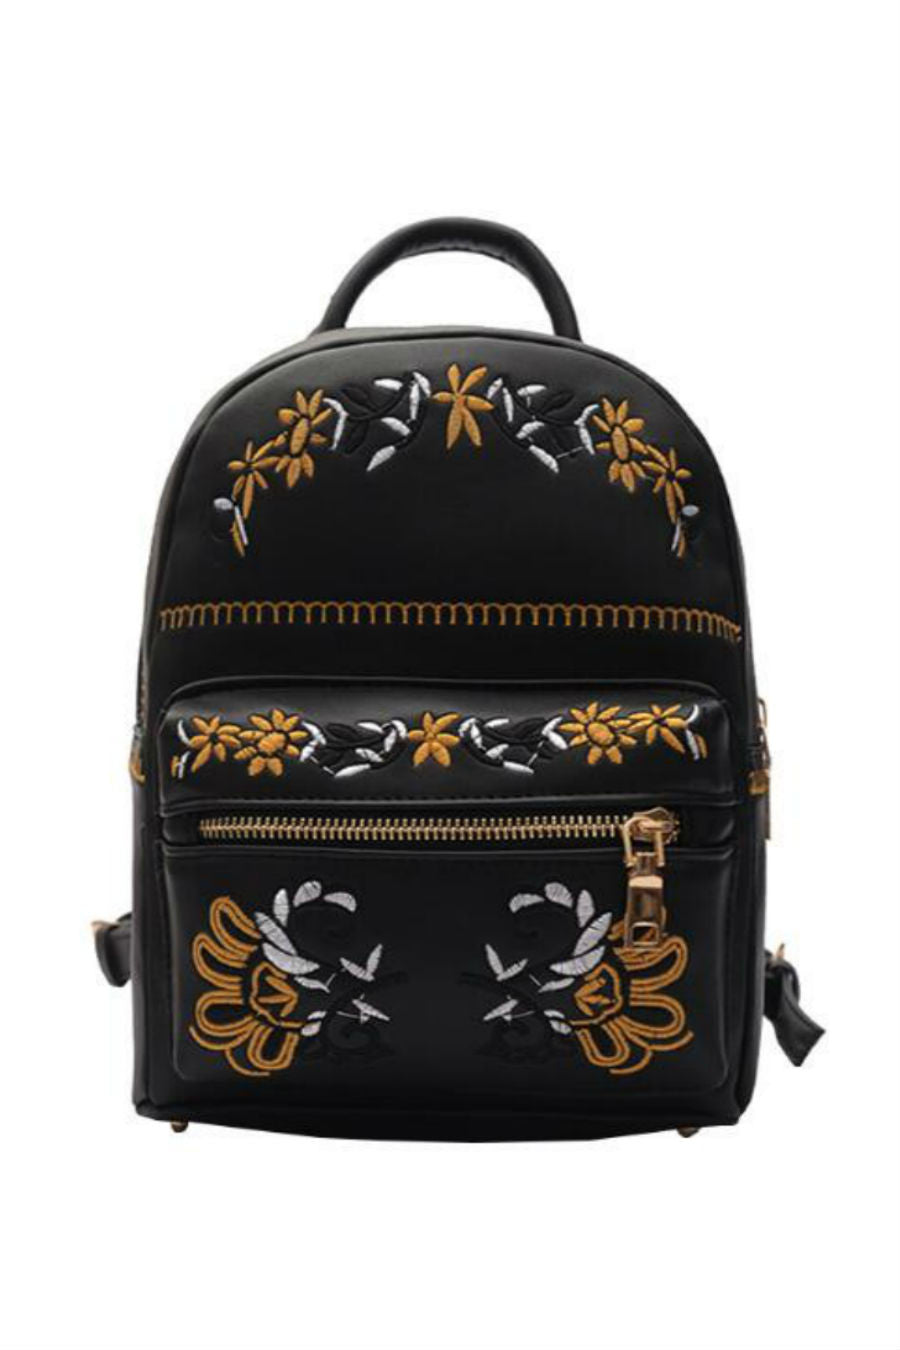 Boho Floral Backpack